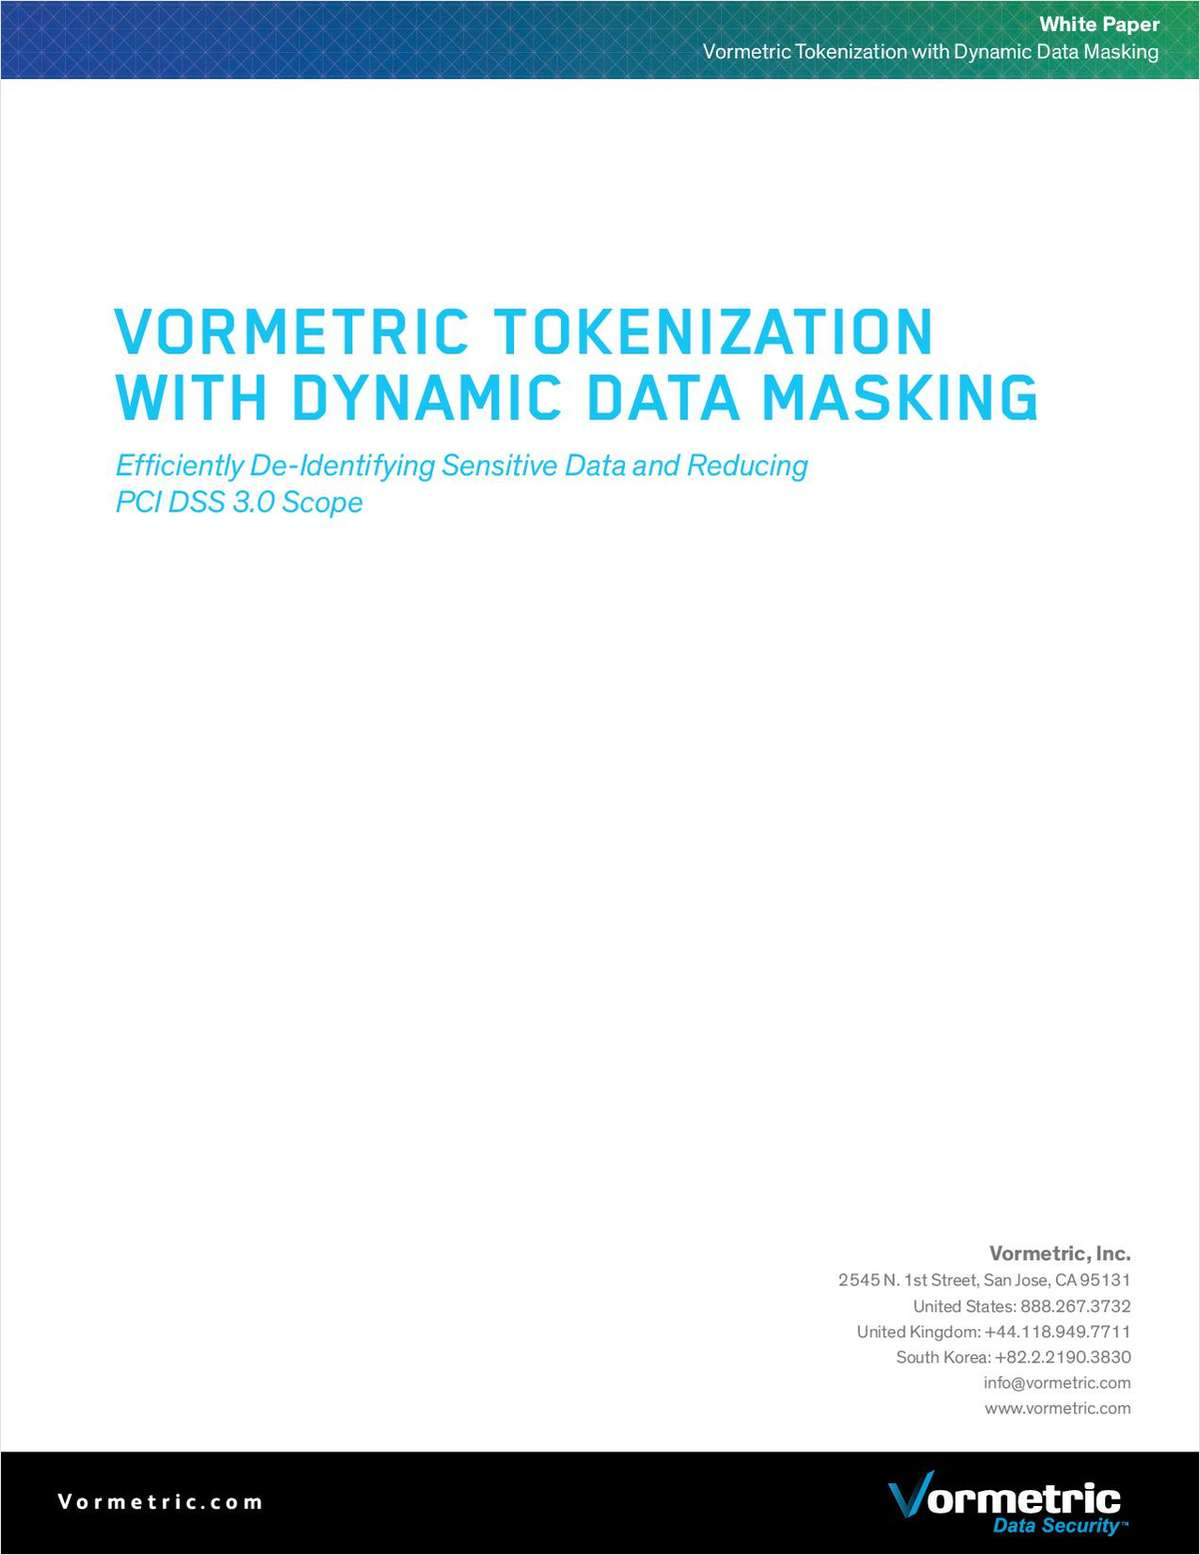 Vormetric Tokenization With Dynamic Data Masking: Efficiently De-Identifying Sensitive Data and Reducing PCI DSS 3.0 Scope